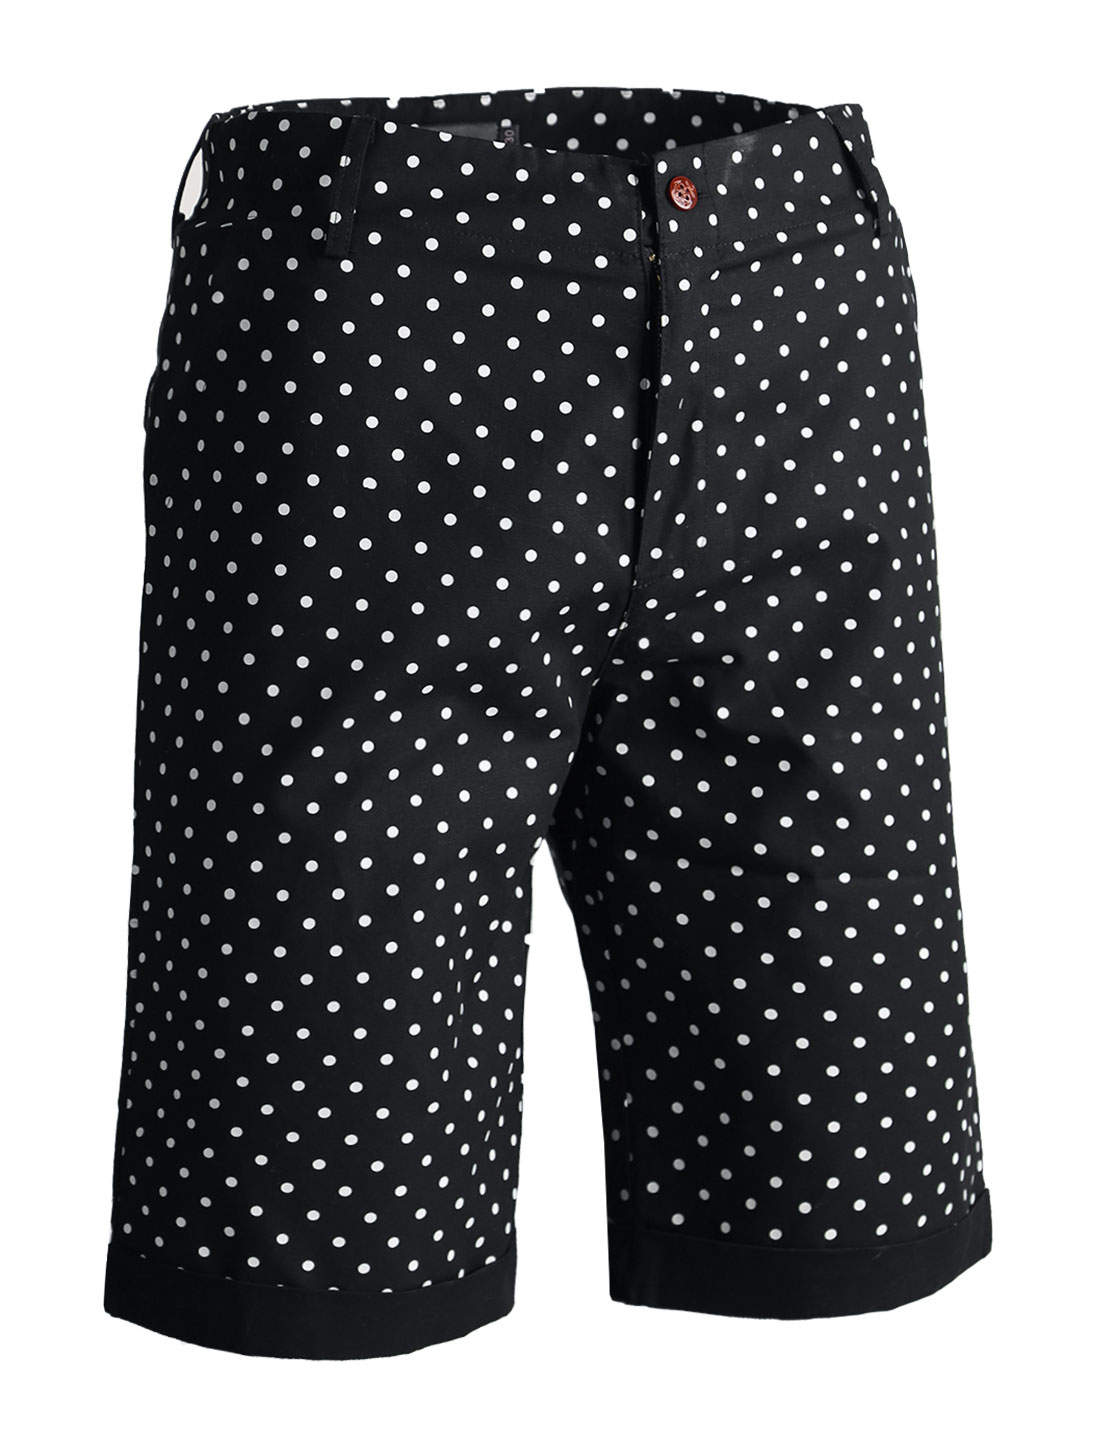 Men Polka Dot Print Buttoned Flap Pockets Cuffed Chino Shorts Black W28